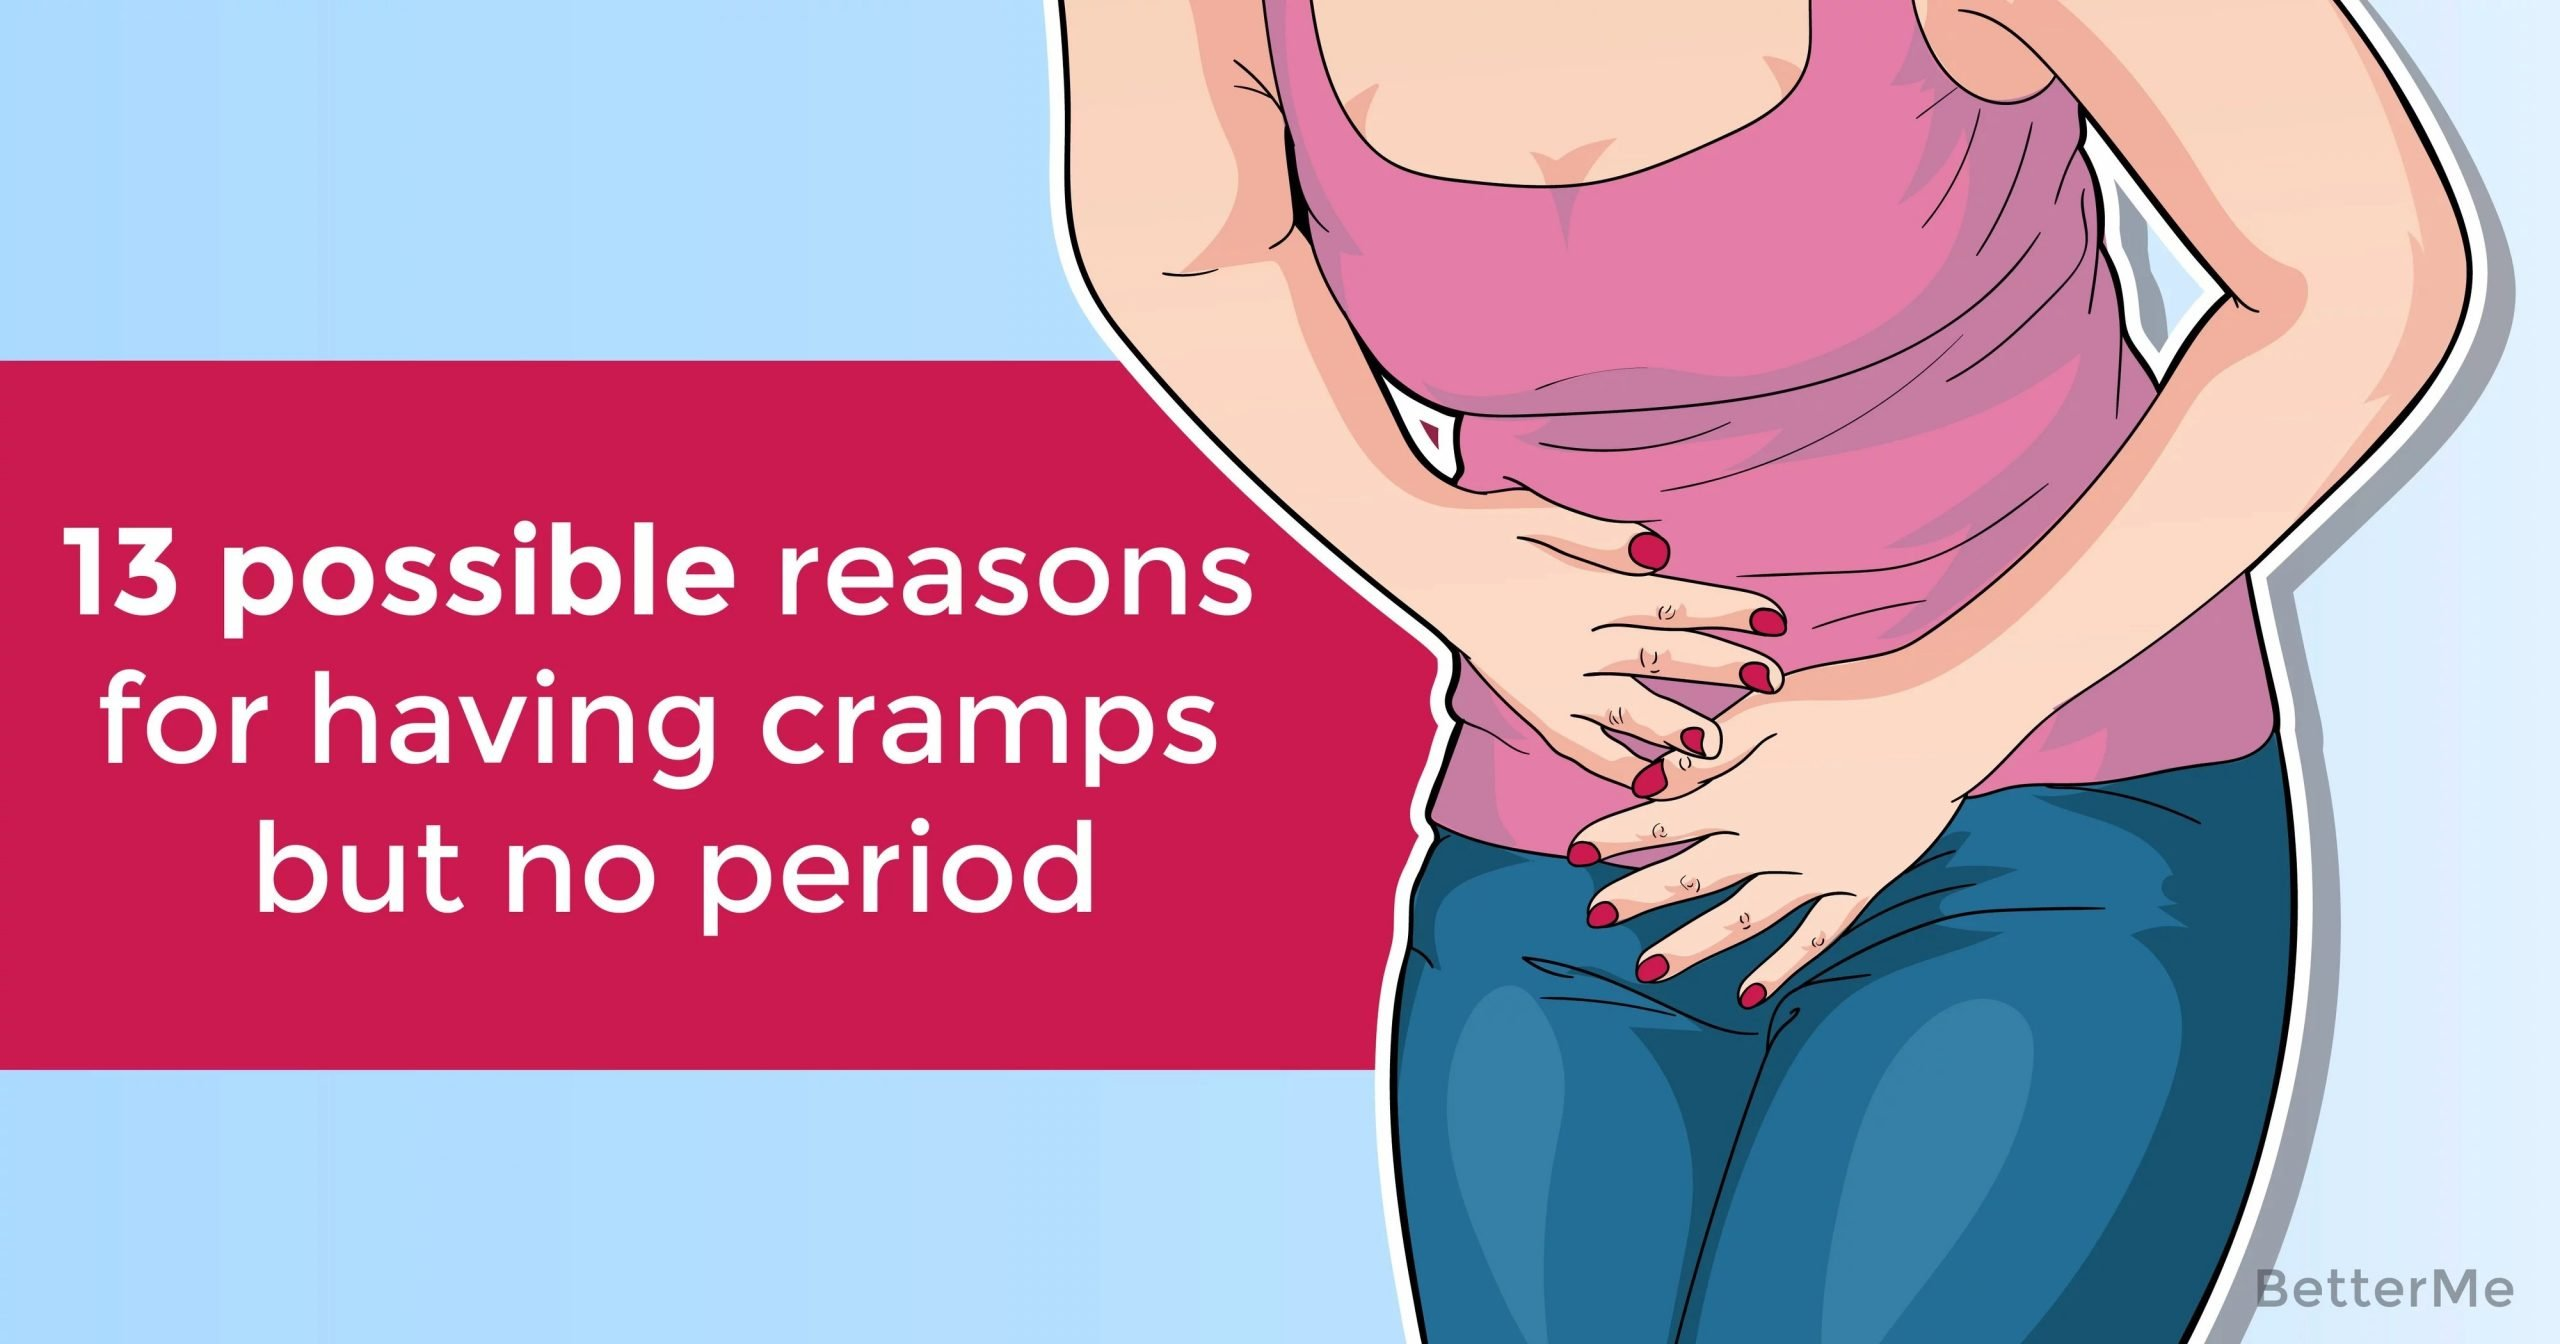 13 possible reasons for having cramps but no period